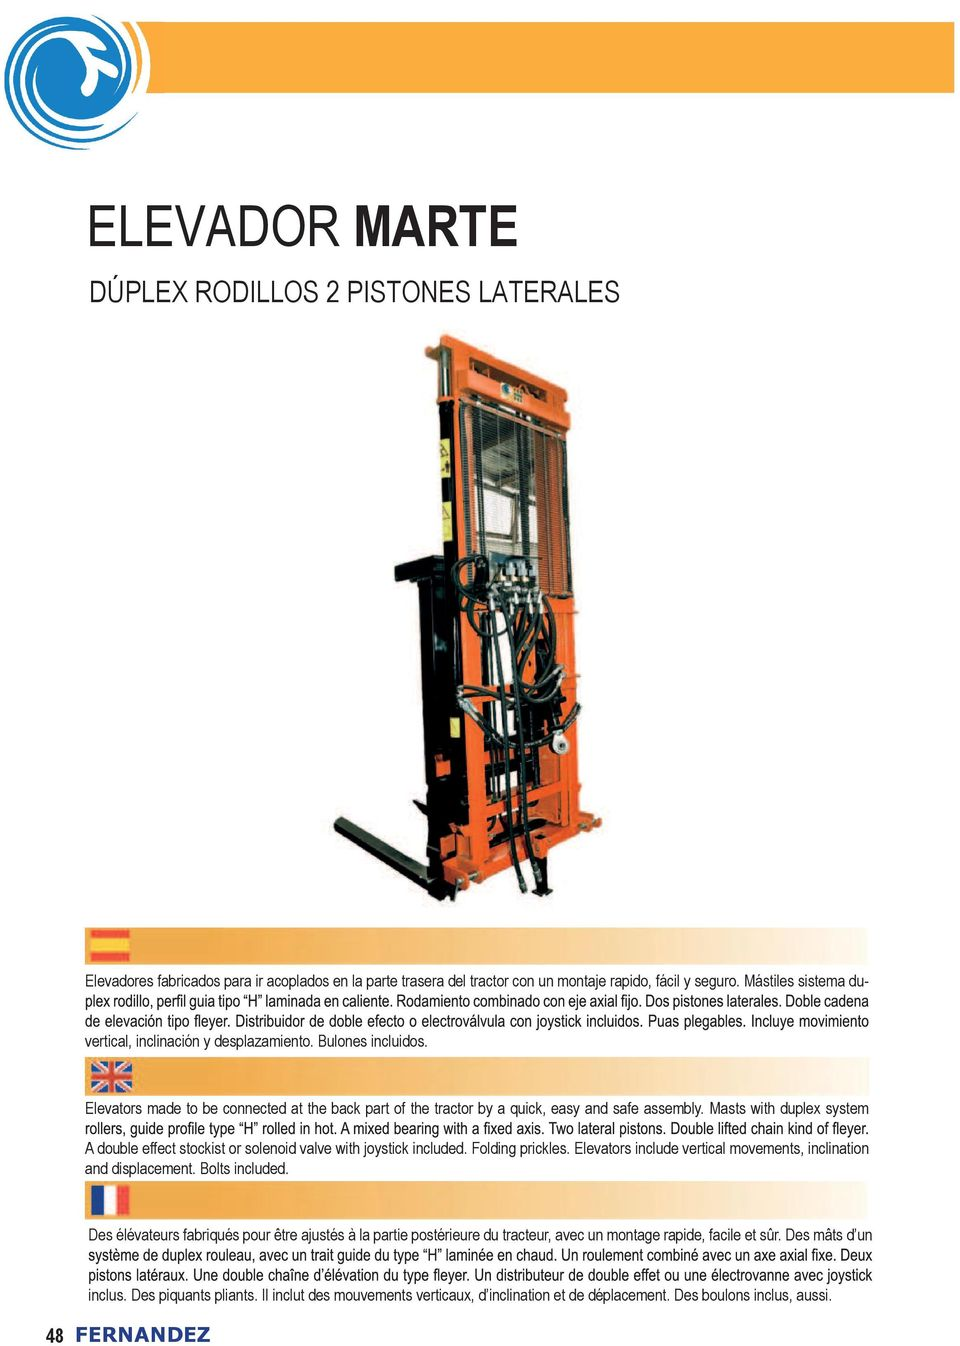 Masts with duplex system A double effect stockist or solenoid valve with joystick included. Folding prickles. Elevators include vertical movements, inclination and displacement. Bolts included.